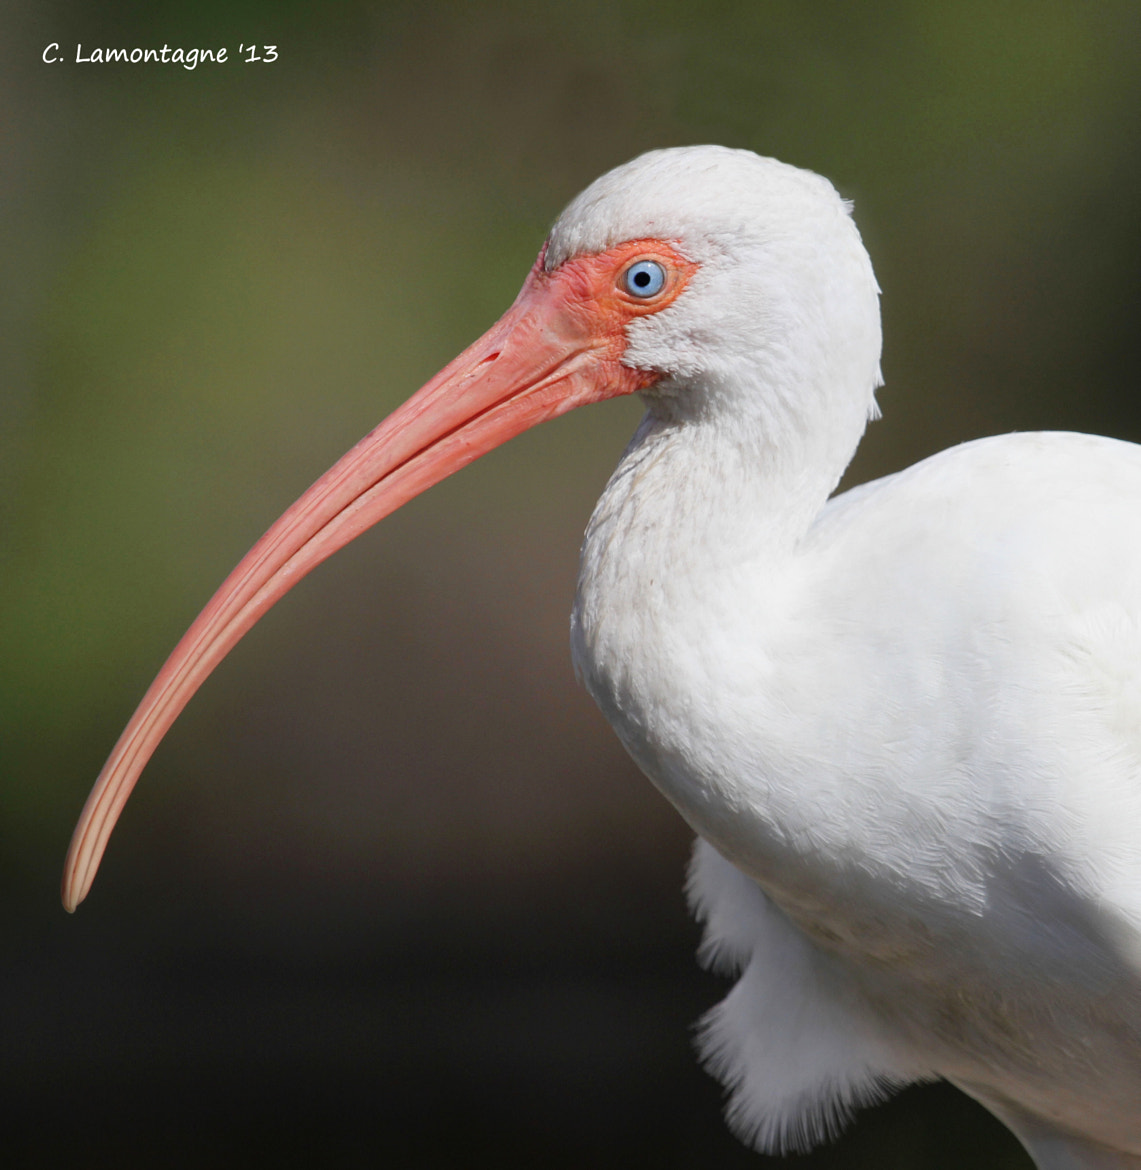 Photograph White Ibis by Corinne Lamontagne on 500px